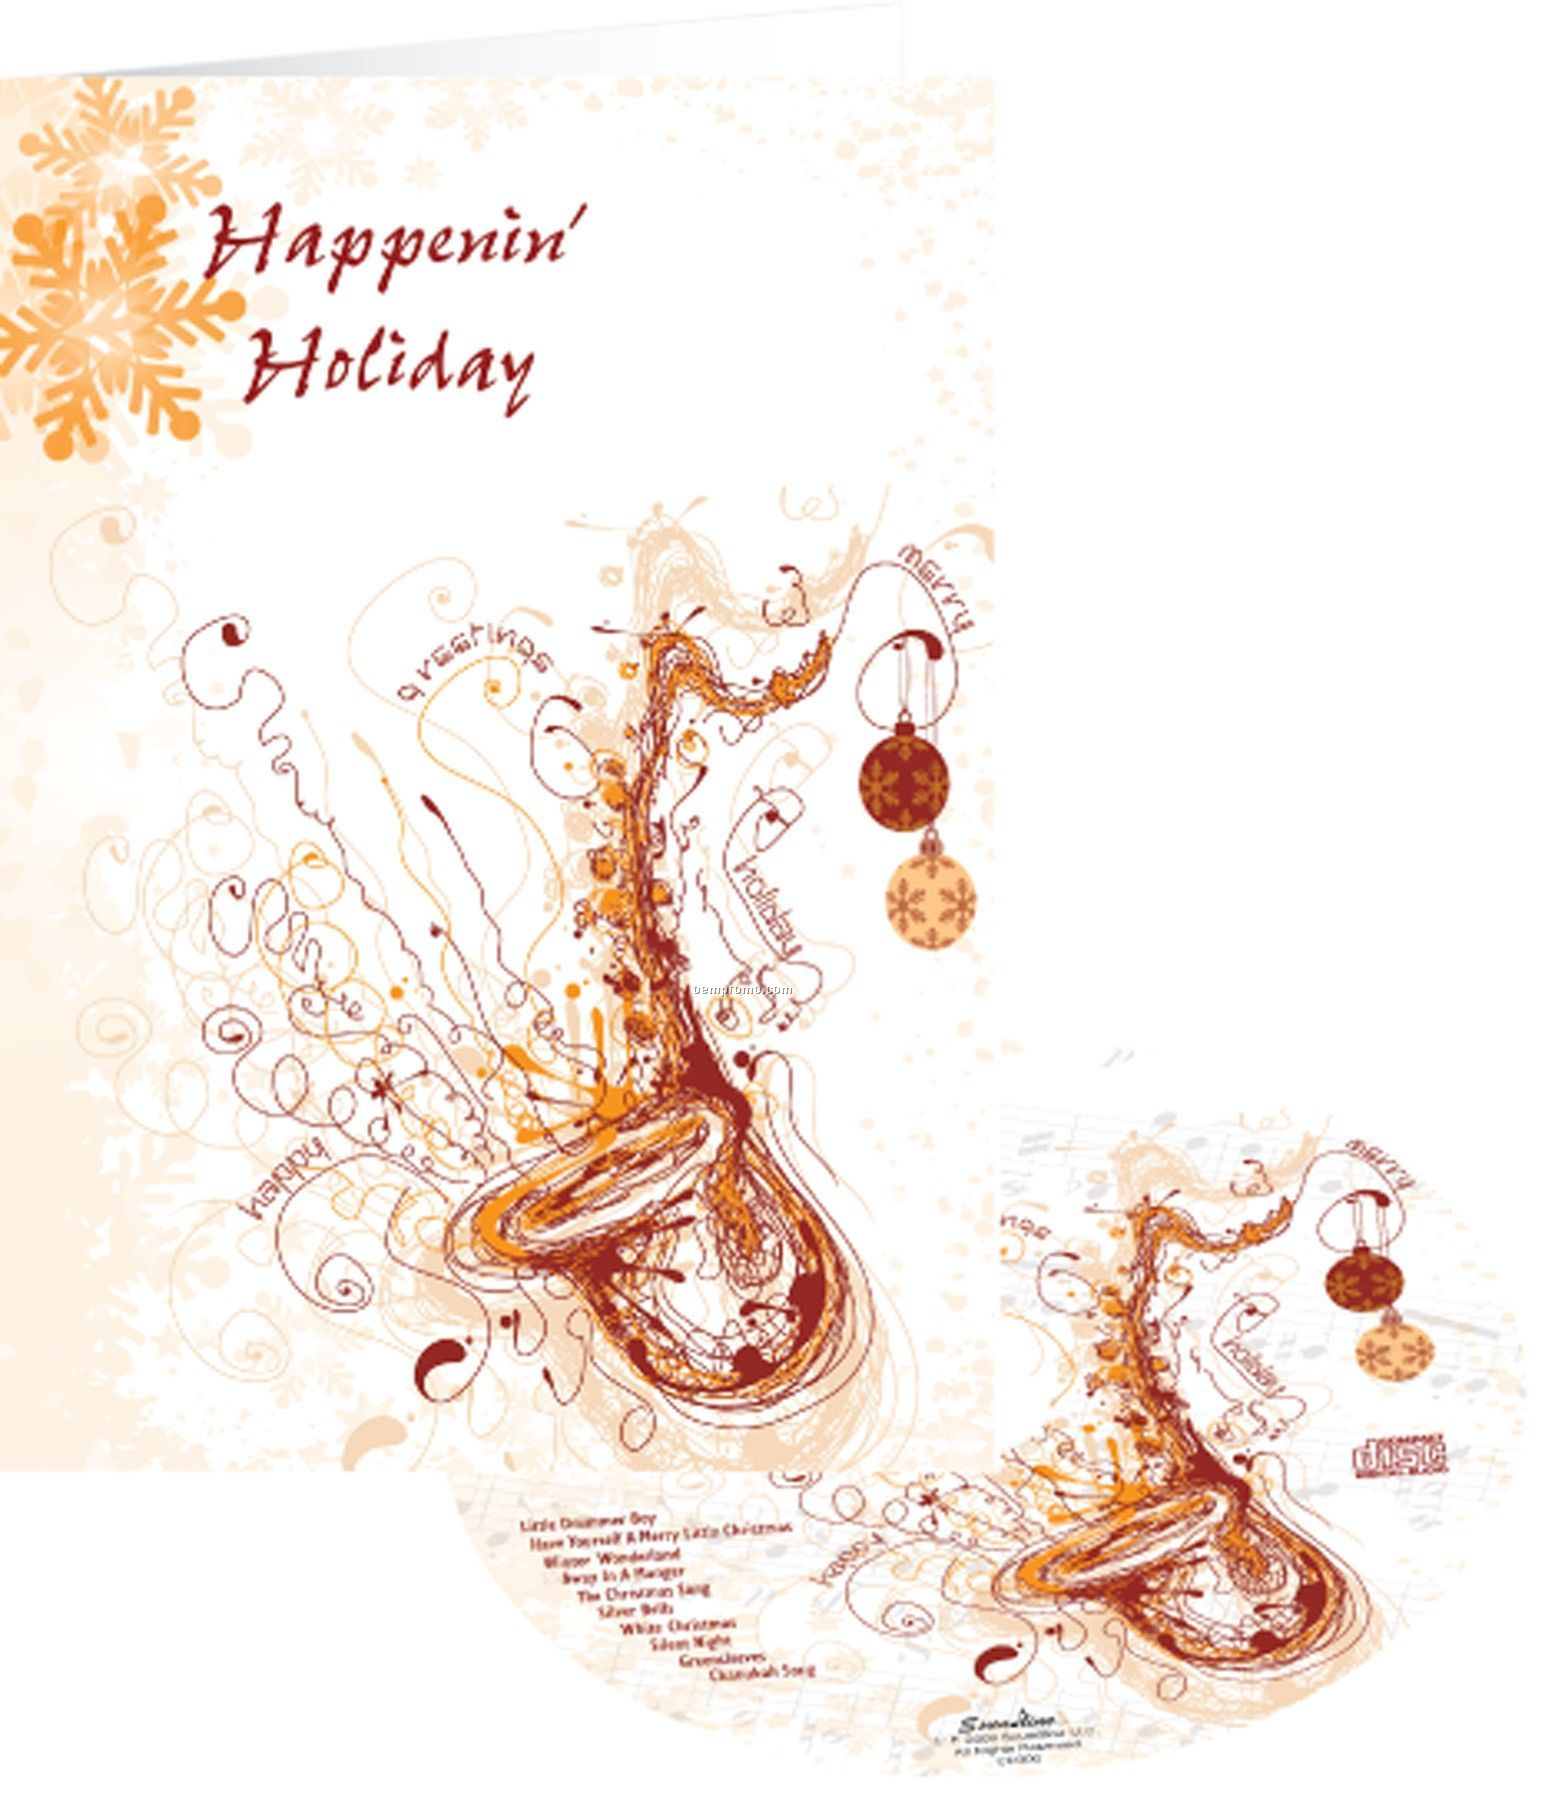 Happenin' Sax Holiday Greeting Card With Matching CD